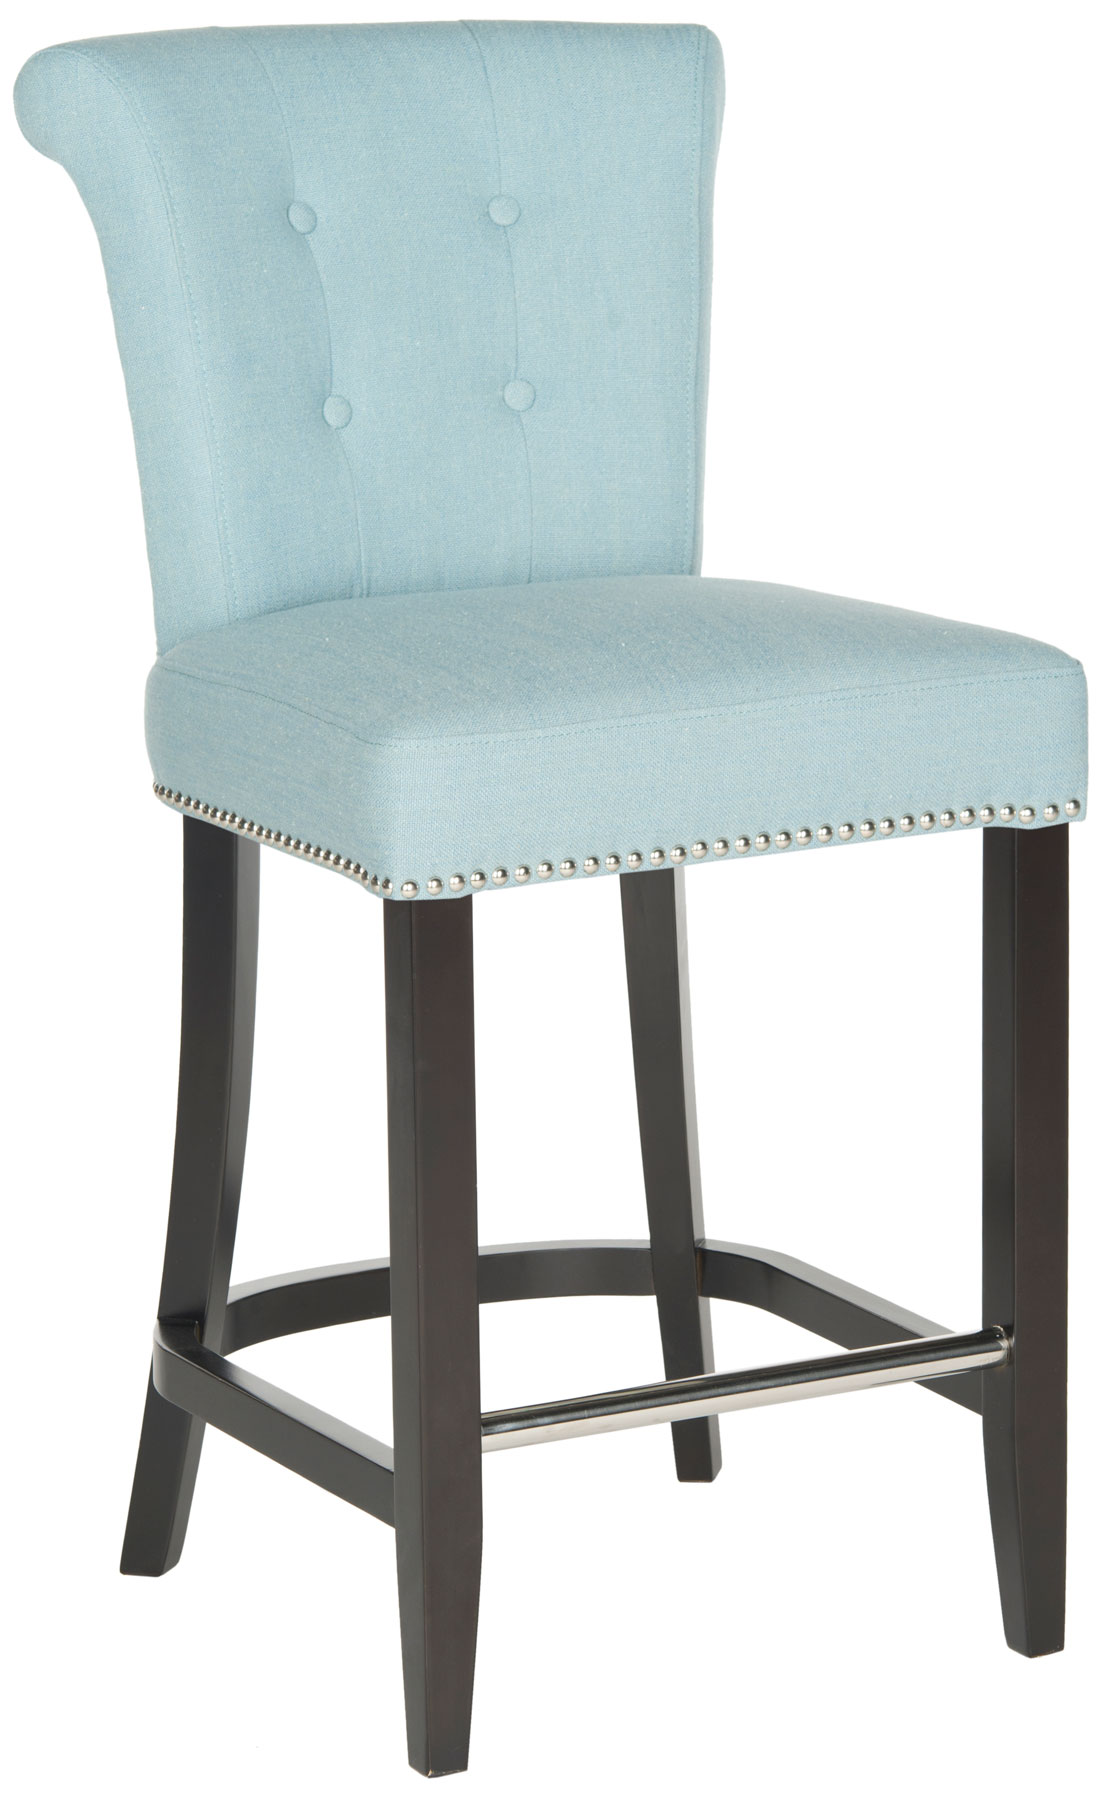 Safavieh Addo Ring Counter Stool, Multiple Colors Available ...